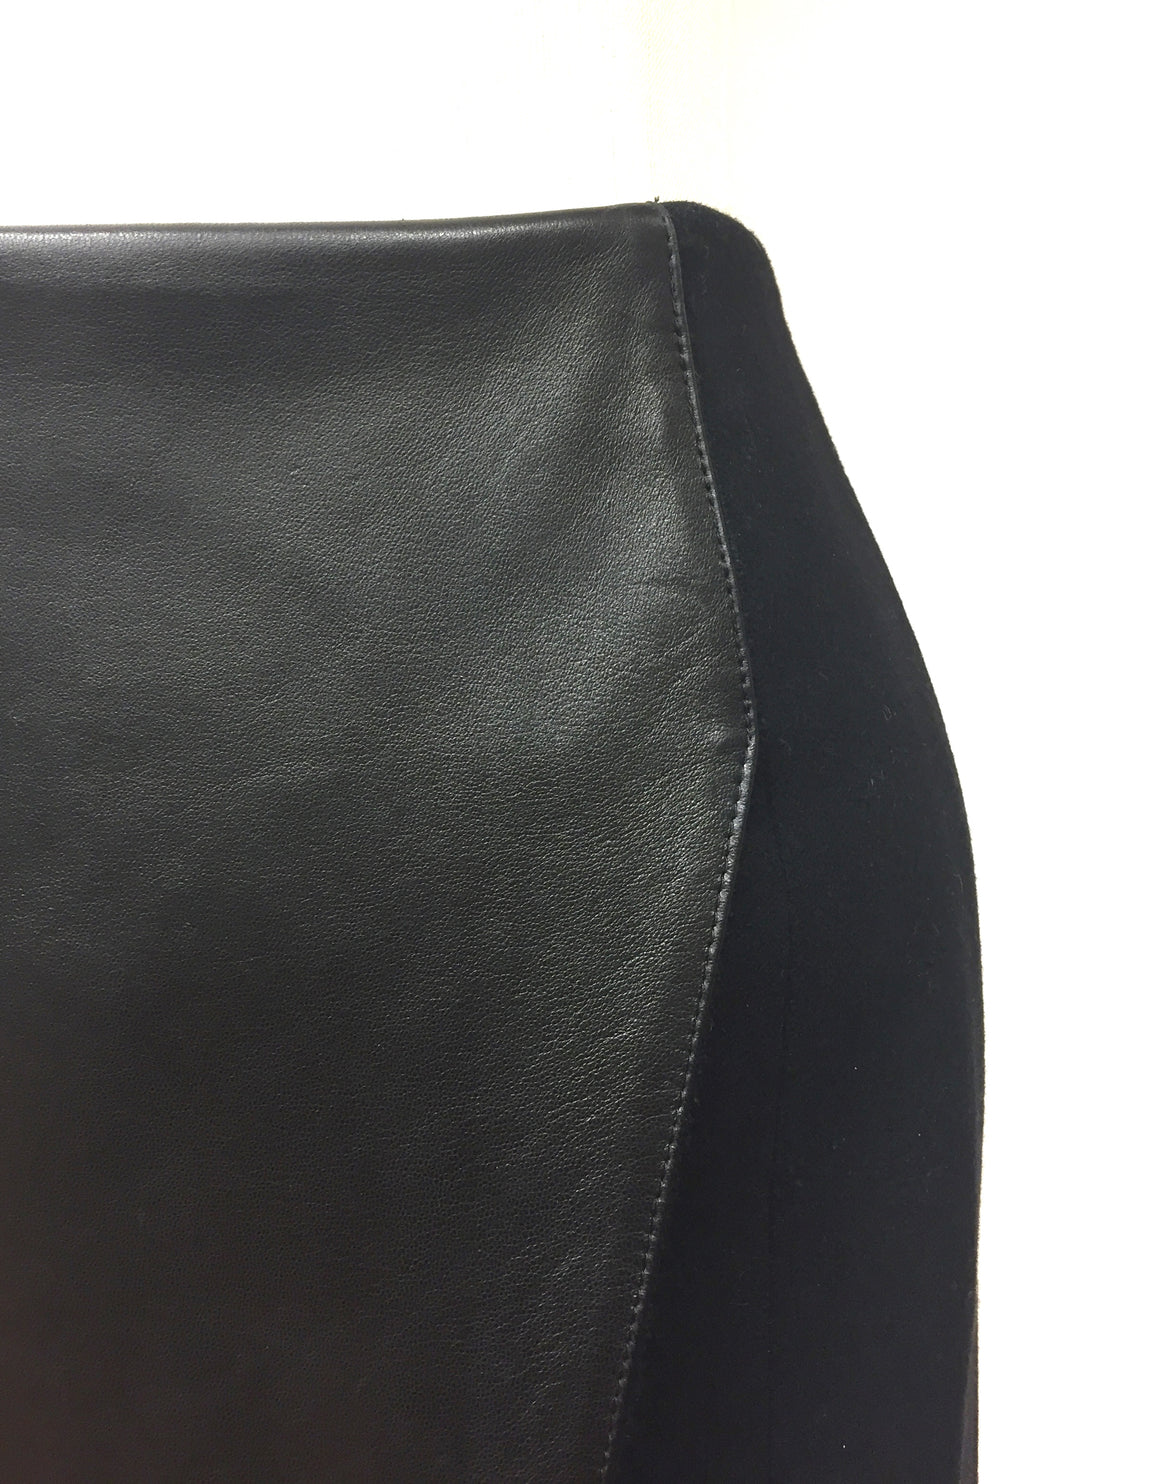 NEIL BARRETT  Black Leather Blend & Leather Wrap-Style Straight Skirt  Size: IT 40 / US6